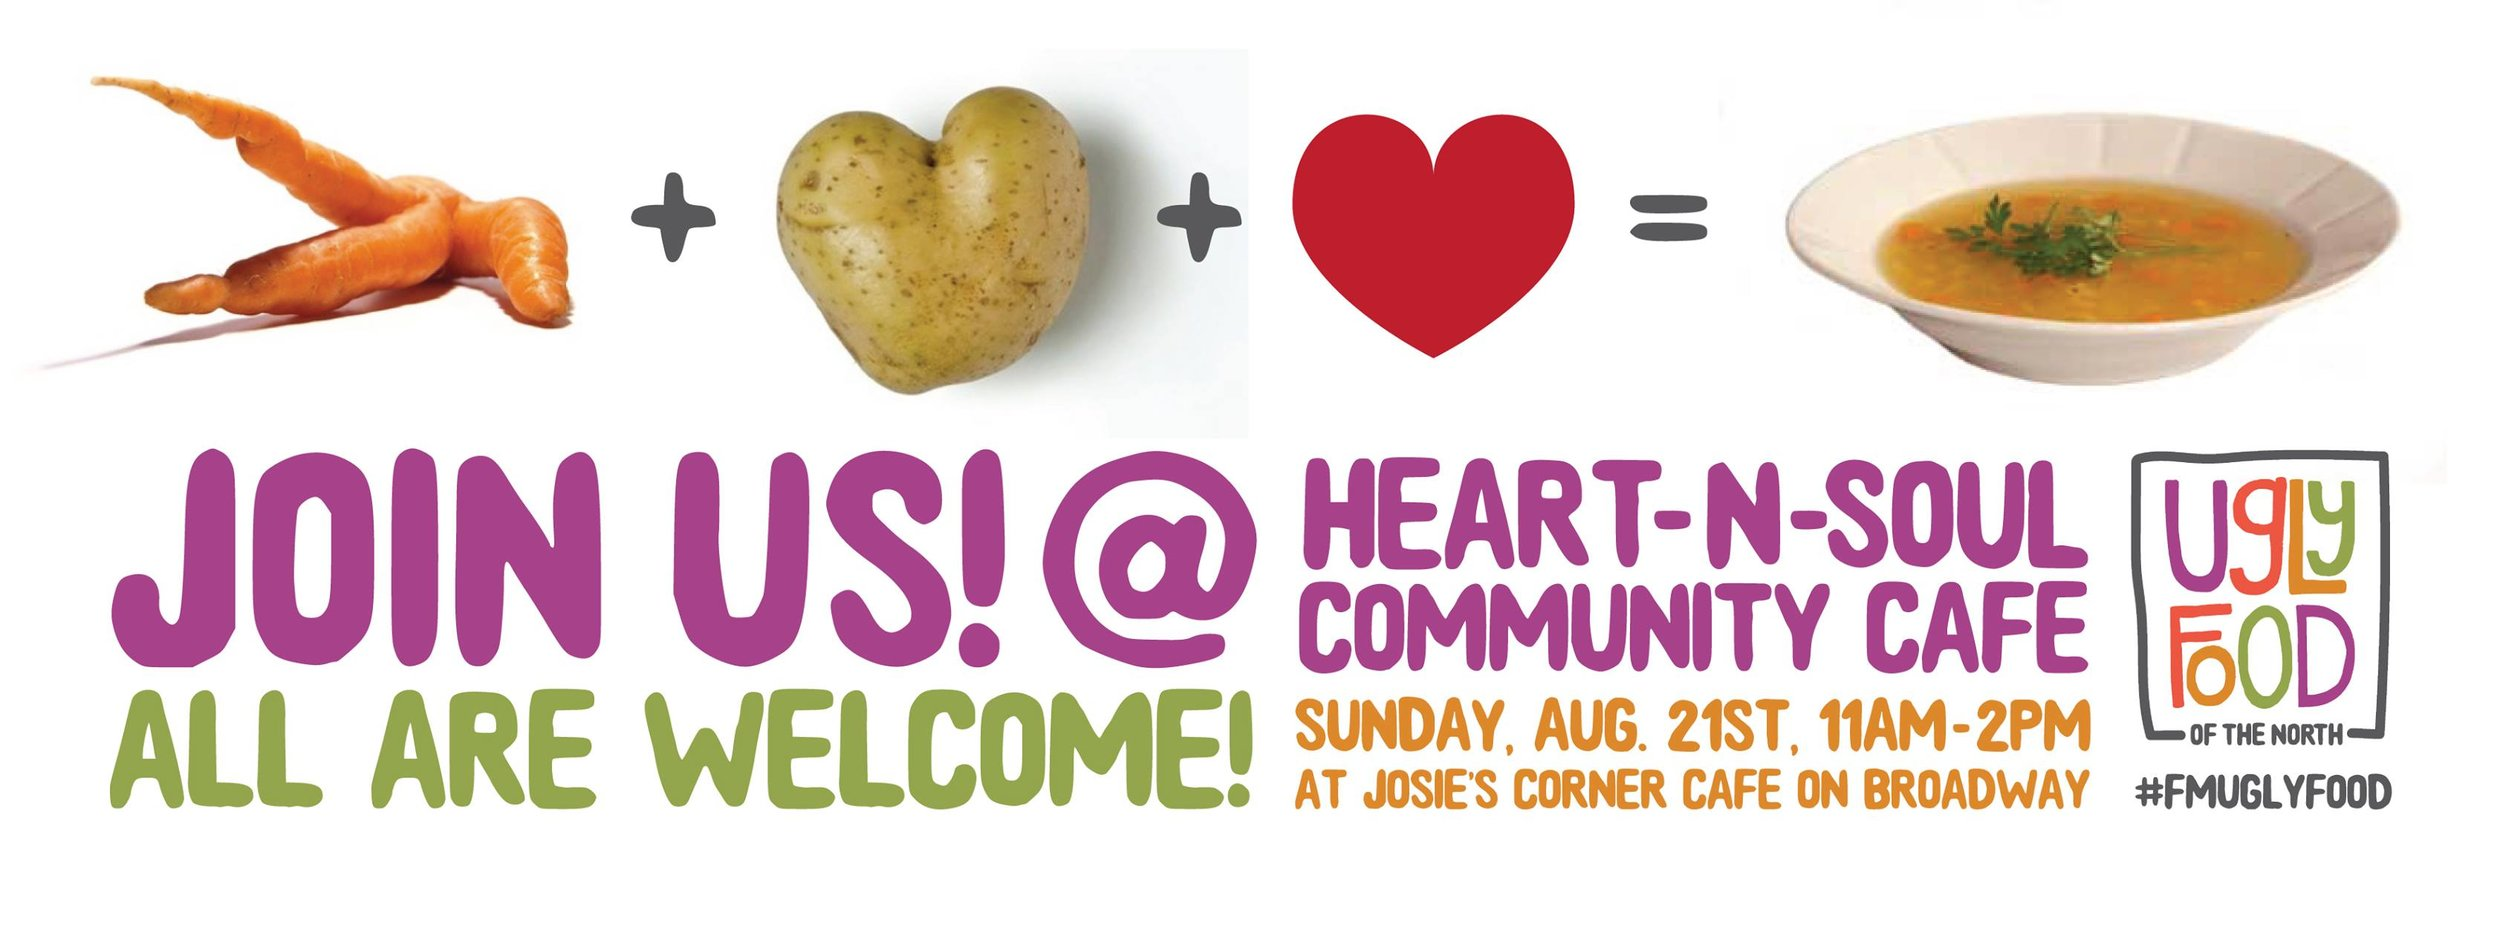 August 2016 - We partnered with  Heart-and-Soul Community Cafe  to take fresh food that would otherwise be wasted and made it into a delicious meal. The Community Cafe model invites anyone to come and enjoy the meal, regardless of ability to pay.